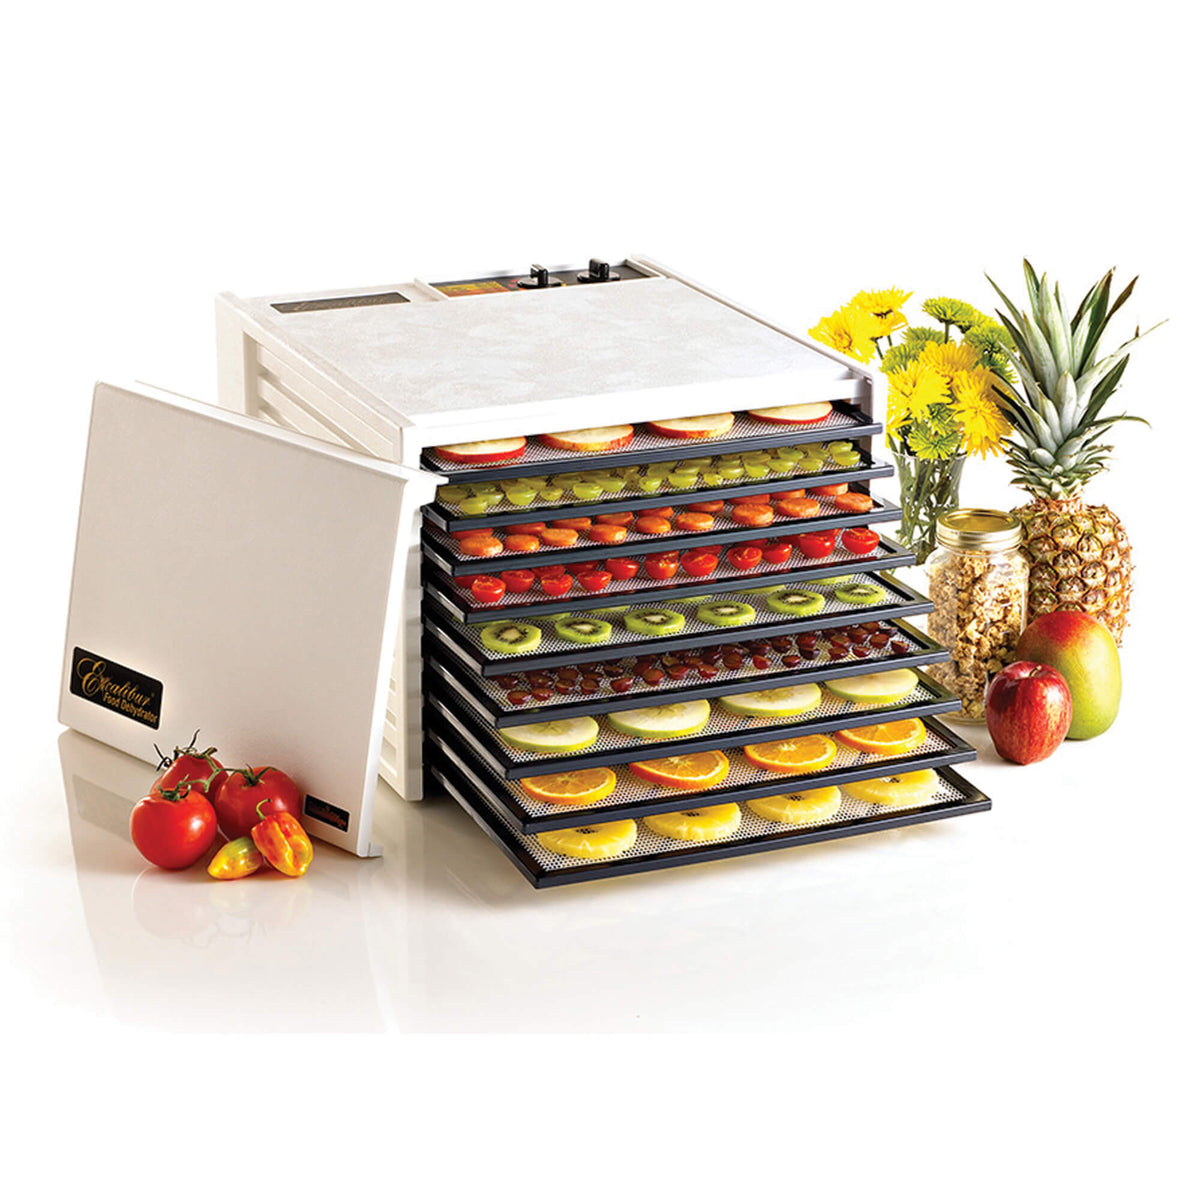 Excalibur 4926TW white 9 tray dehydrator with door propped to the side and food on the trays.